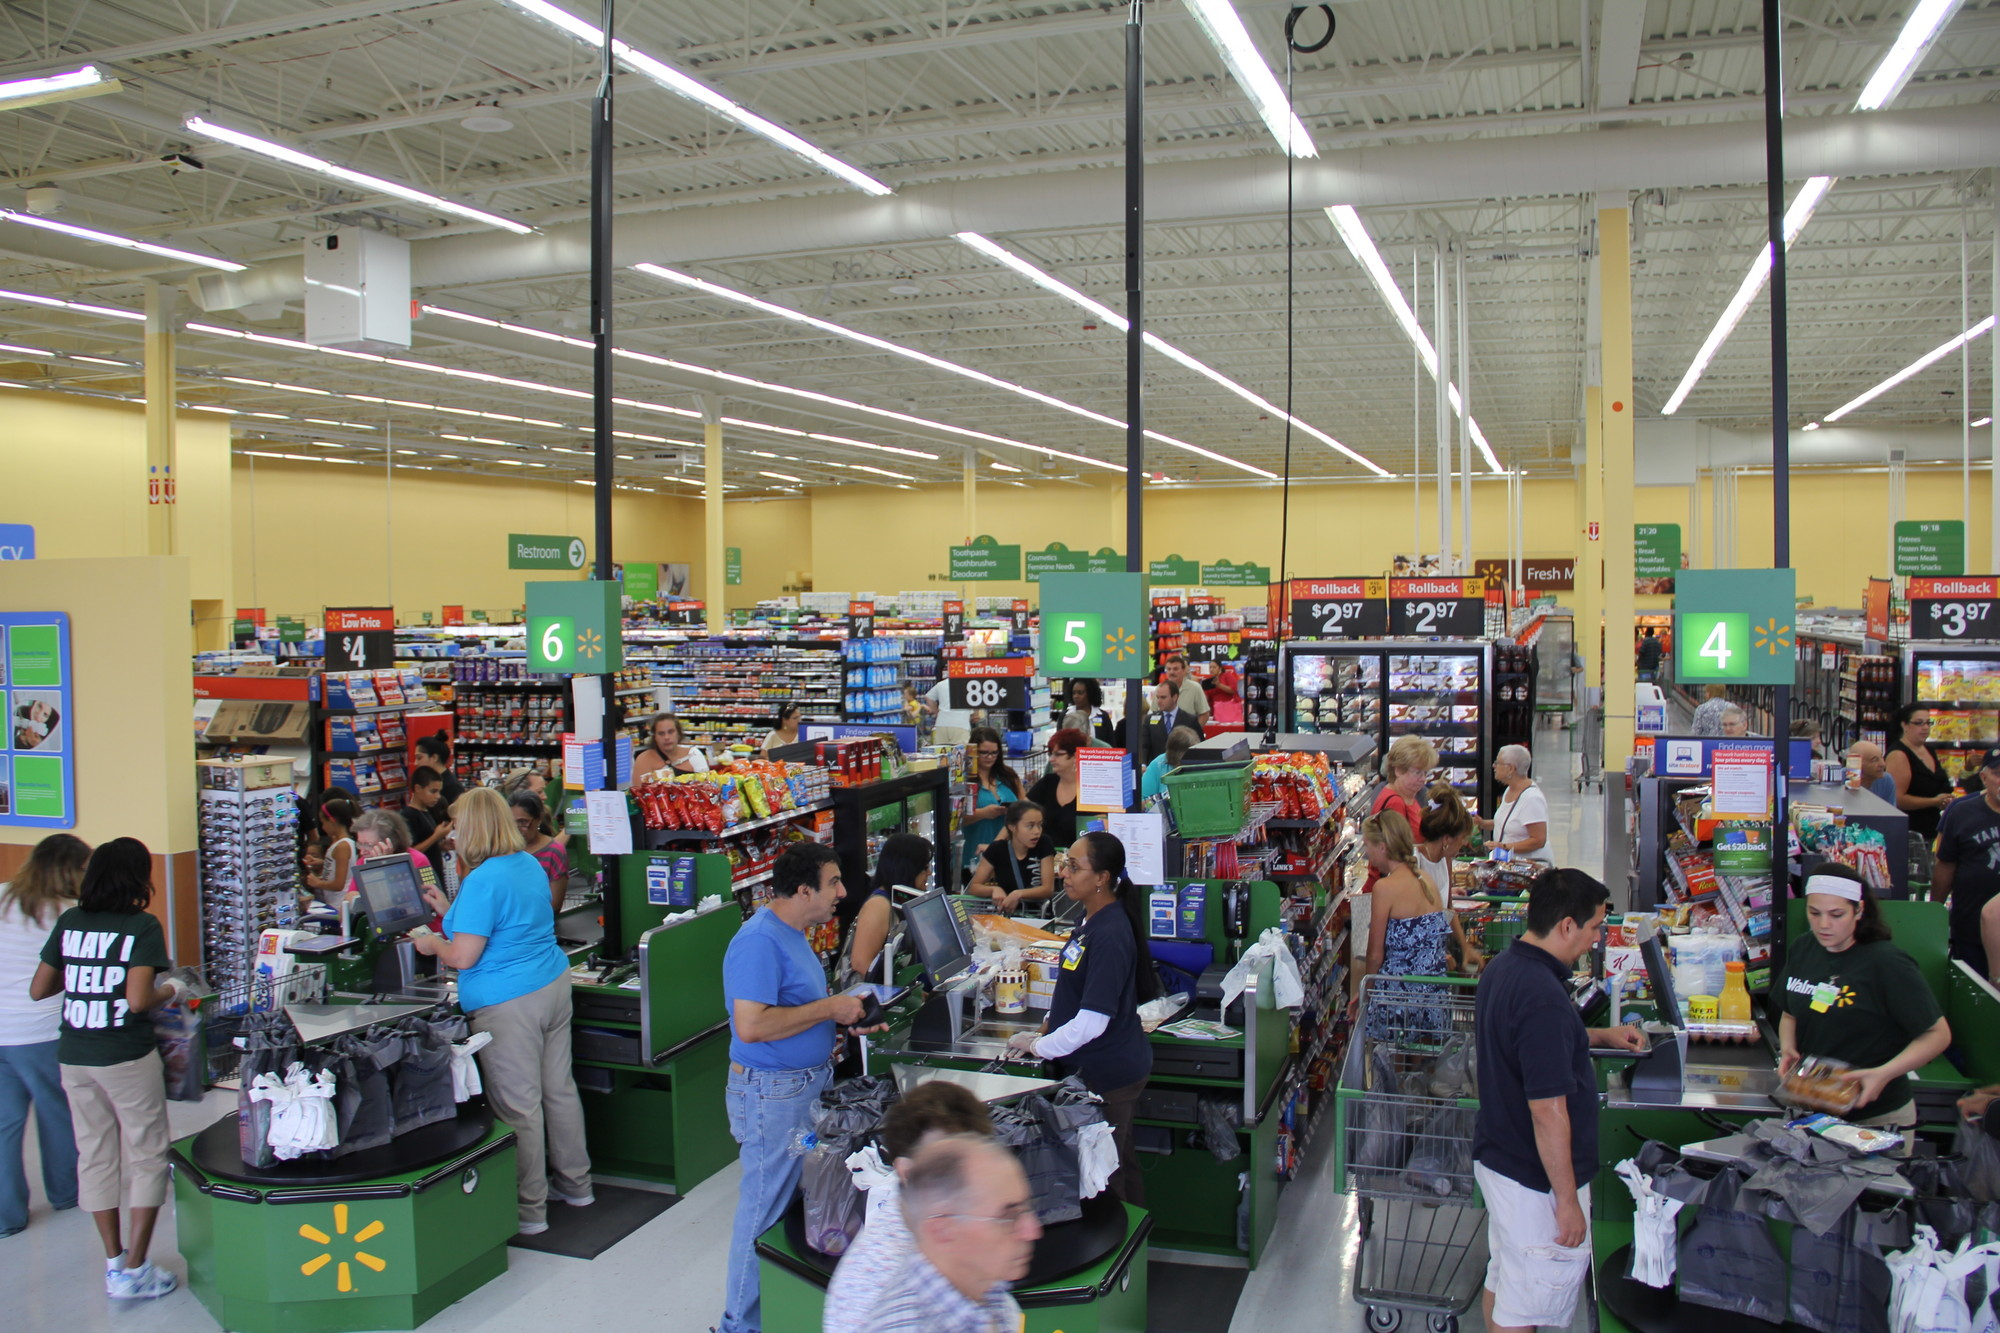 Walmart Neighborhood Market in Levittown is roughly one-third the size of a traditional Walmart Supermarket, one of which already exists in Levittown. Its grand opening on July 12 attracted hundreds of customers.